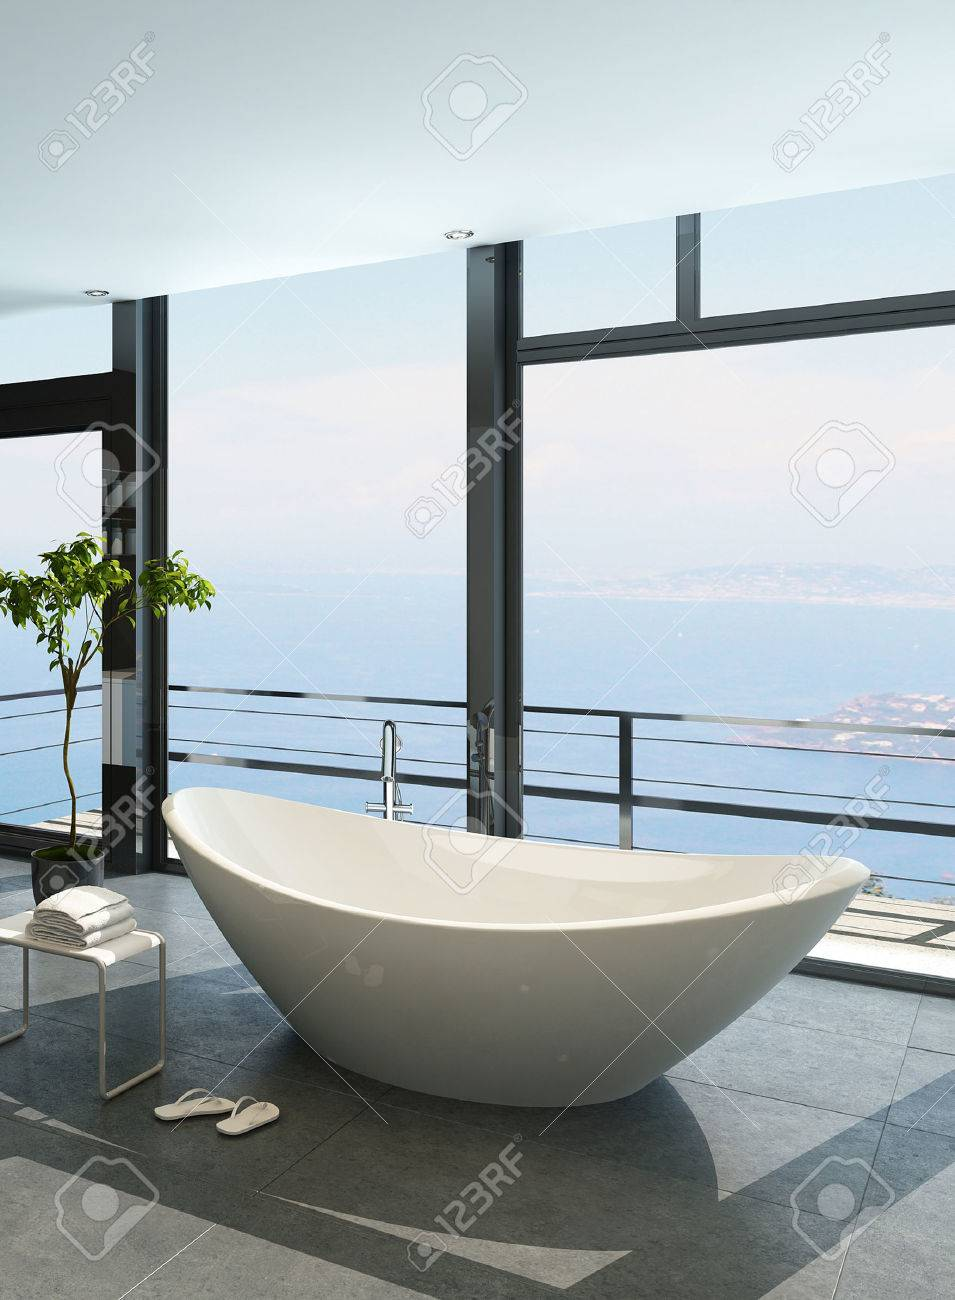 Expensive Luxury Bathtub Against Panoramic Window With Seascape ...